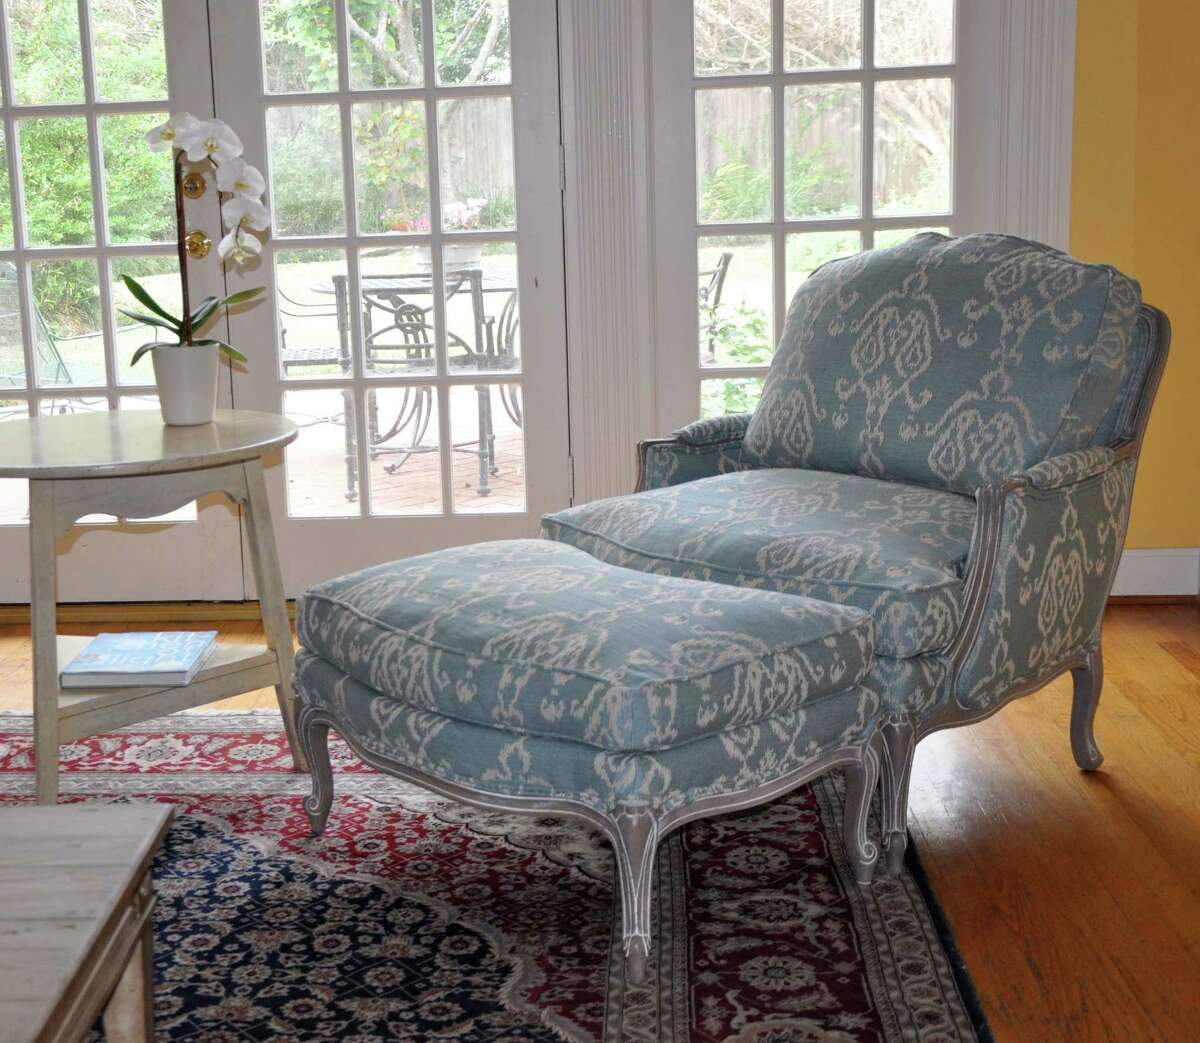 Prices for the Versailles chair start at $1359; the ottoman starts at $689, at Ethan Allen stores.